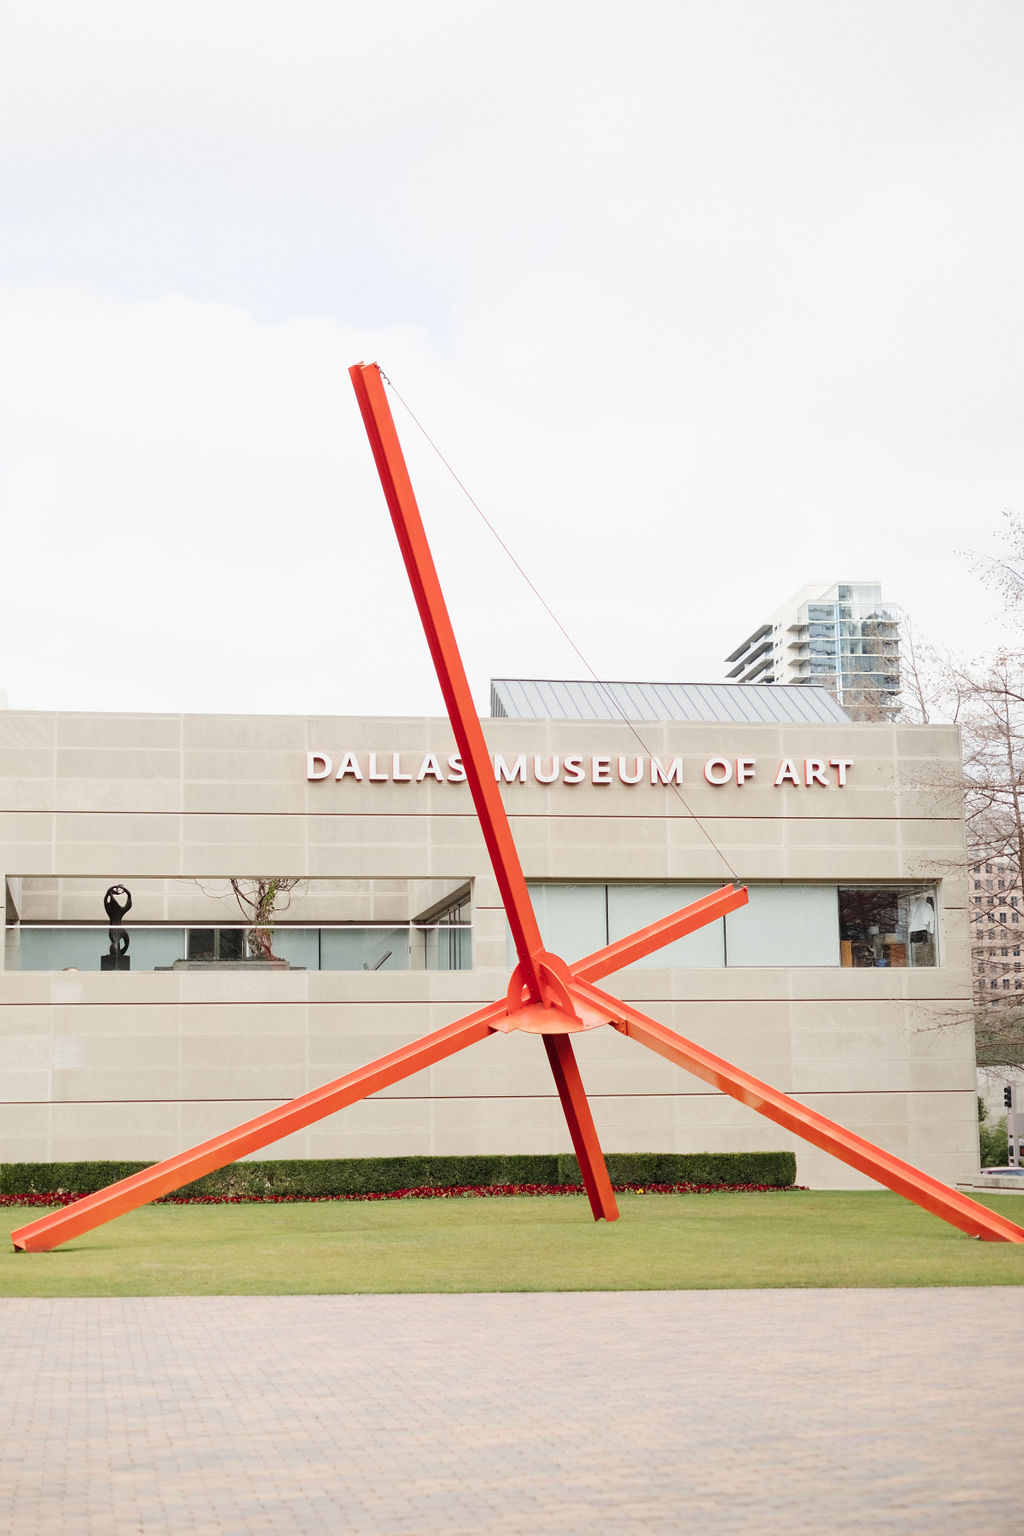 Dallas Travel Guide - Things to do in Dallas, featuring the Dallas Museum of Art